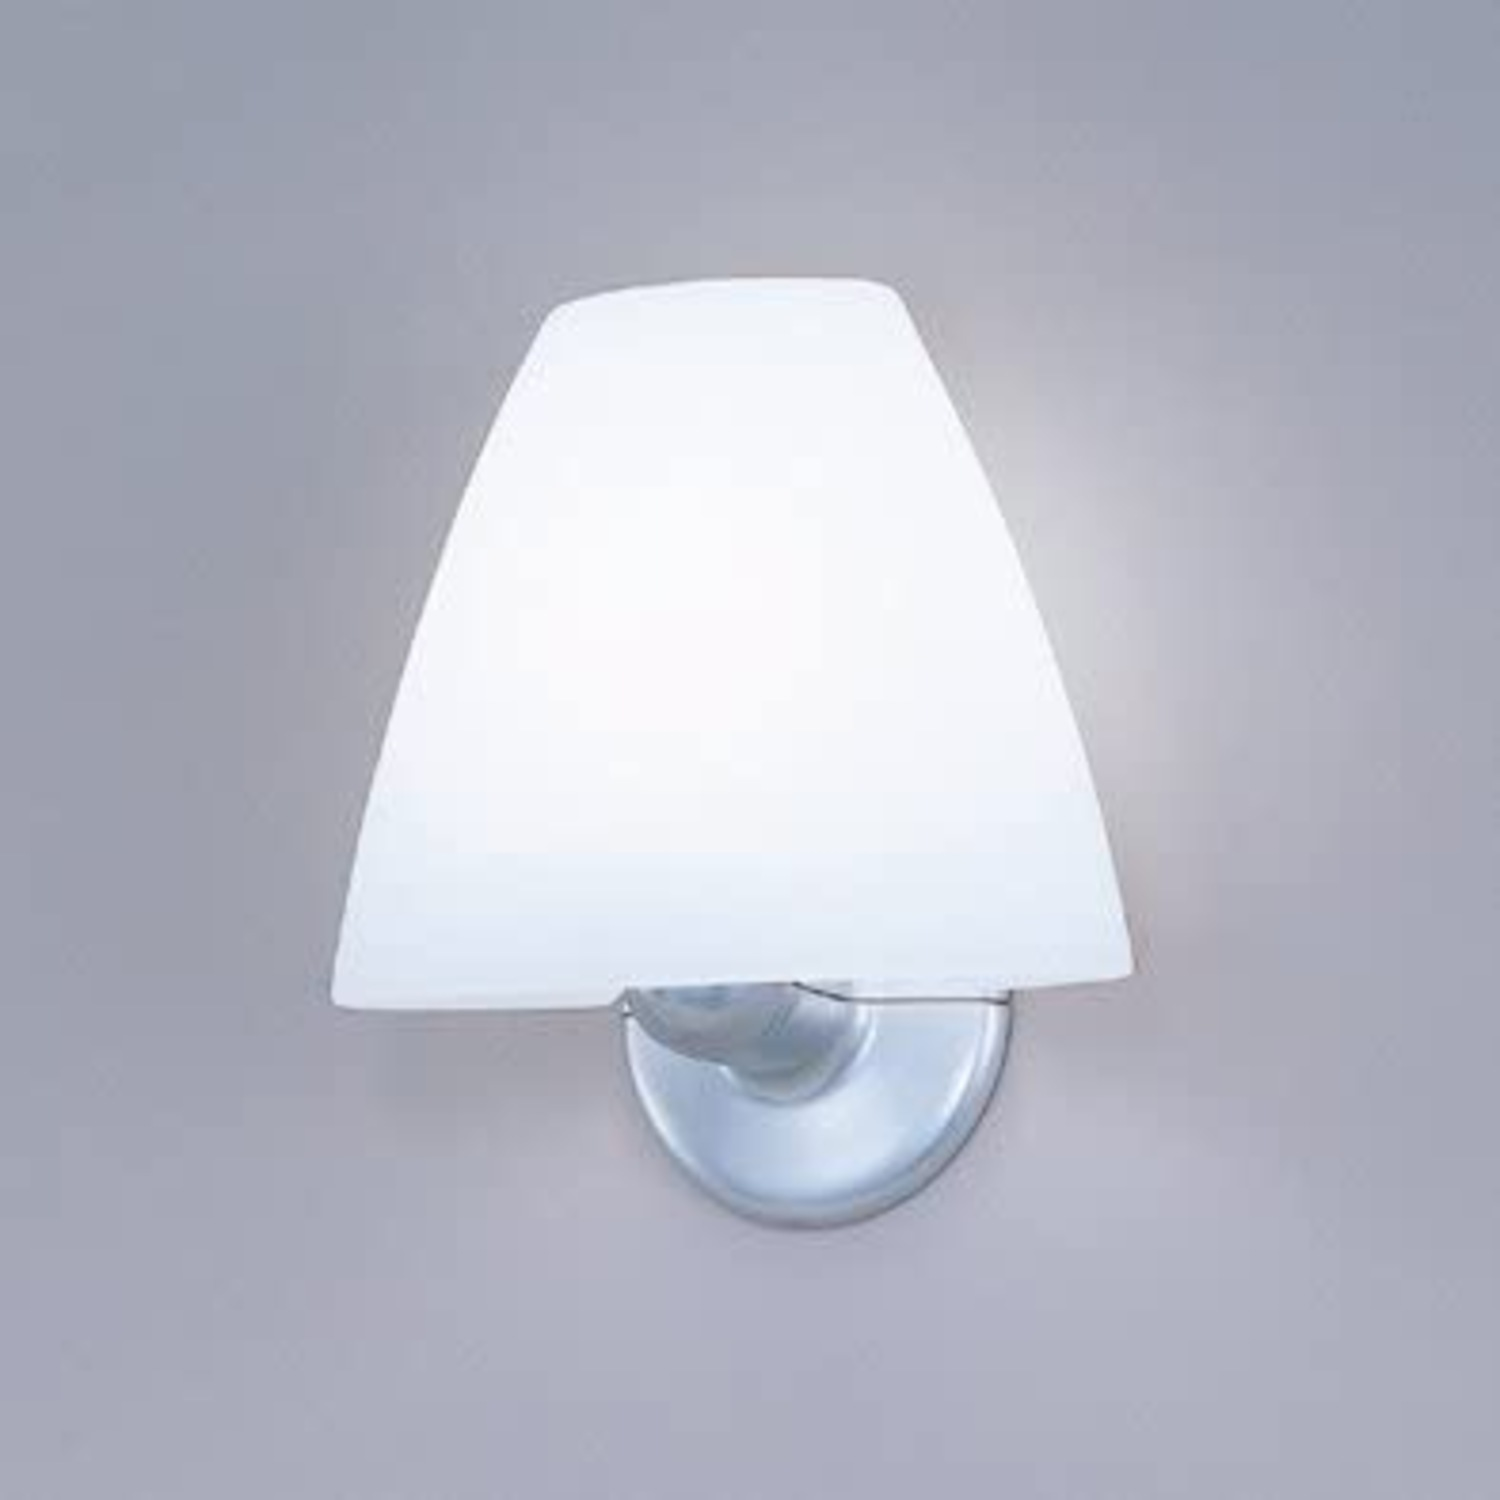 Flos Sally Sconce by Marcello Zilliani - image-3